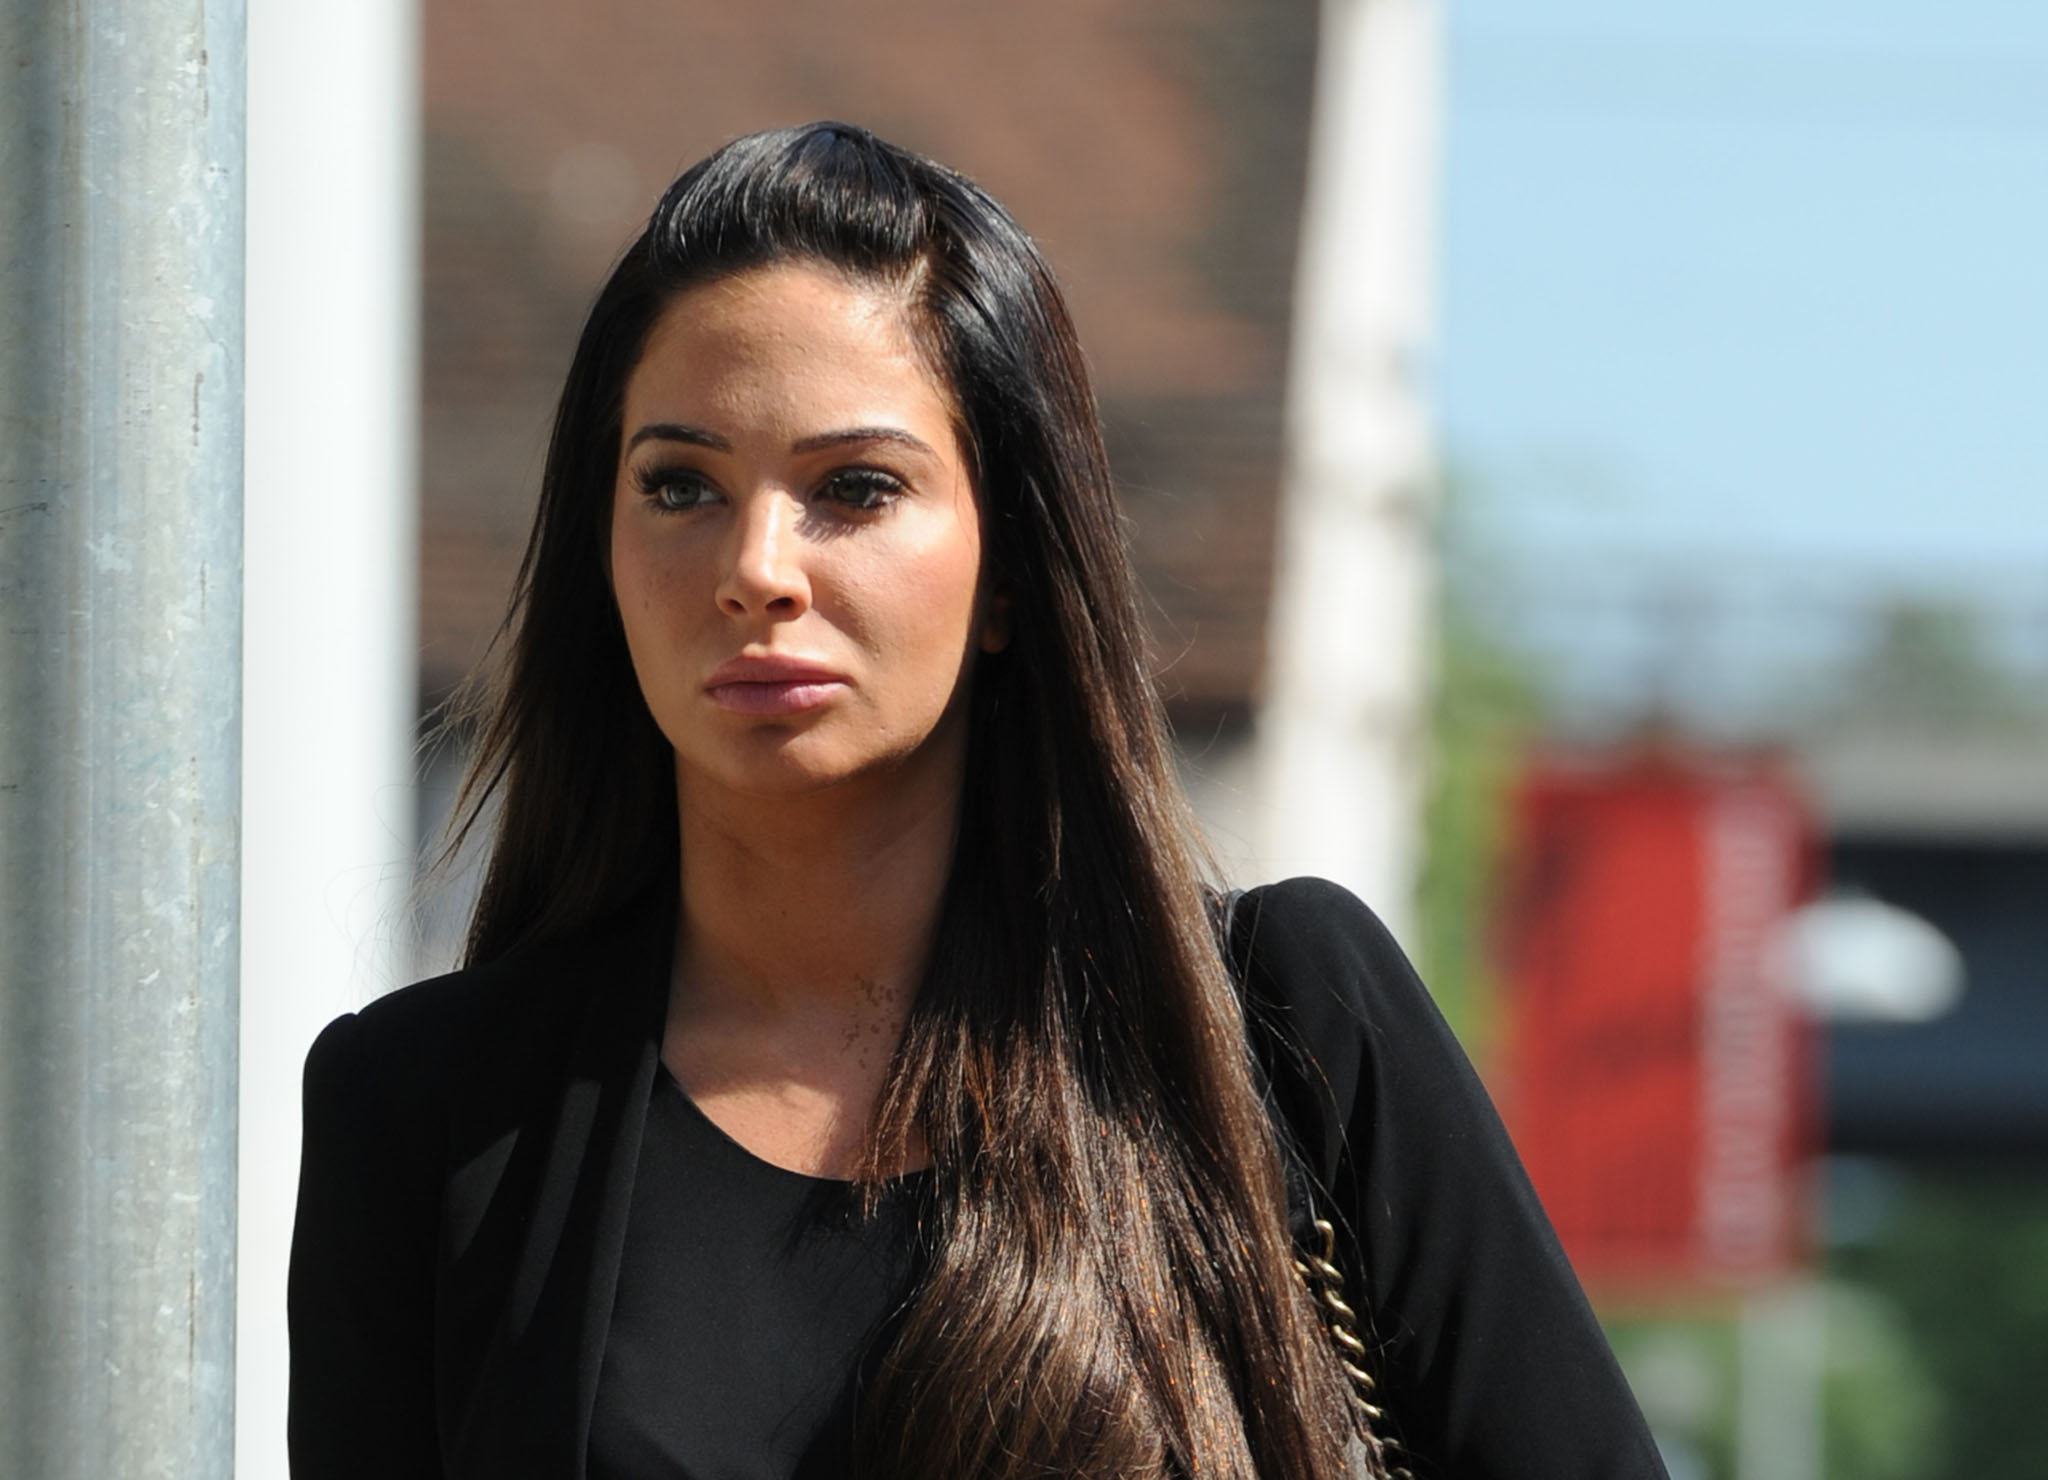 CHELMSFORD, ENGLAND - MAY 19: Tulisa Contostavlos arrives to face assault charges at Chelmsford Magistrates Court on May 19, 2014 in Chelmsford, England. (Photo by Stuart C. Wilson/Getty Images)